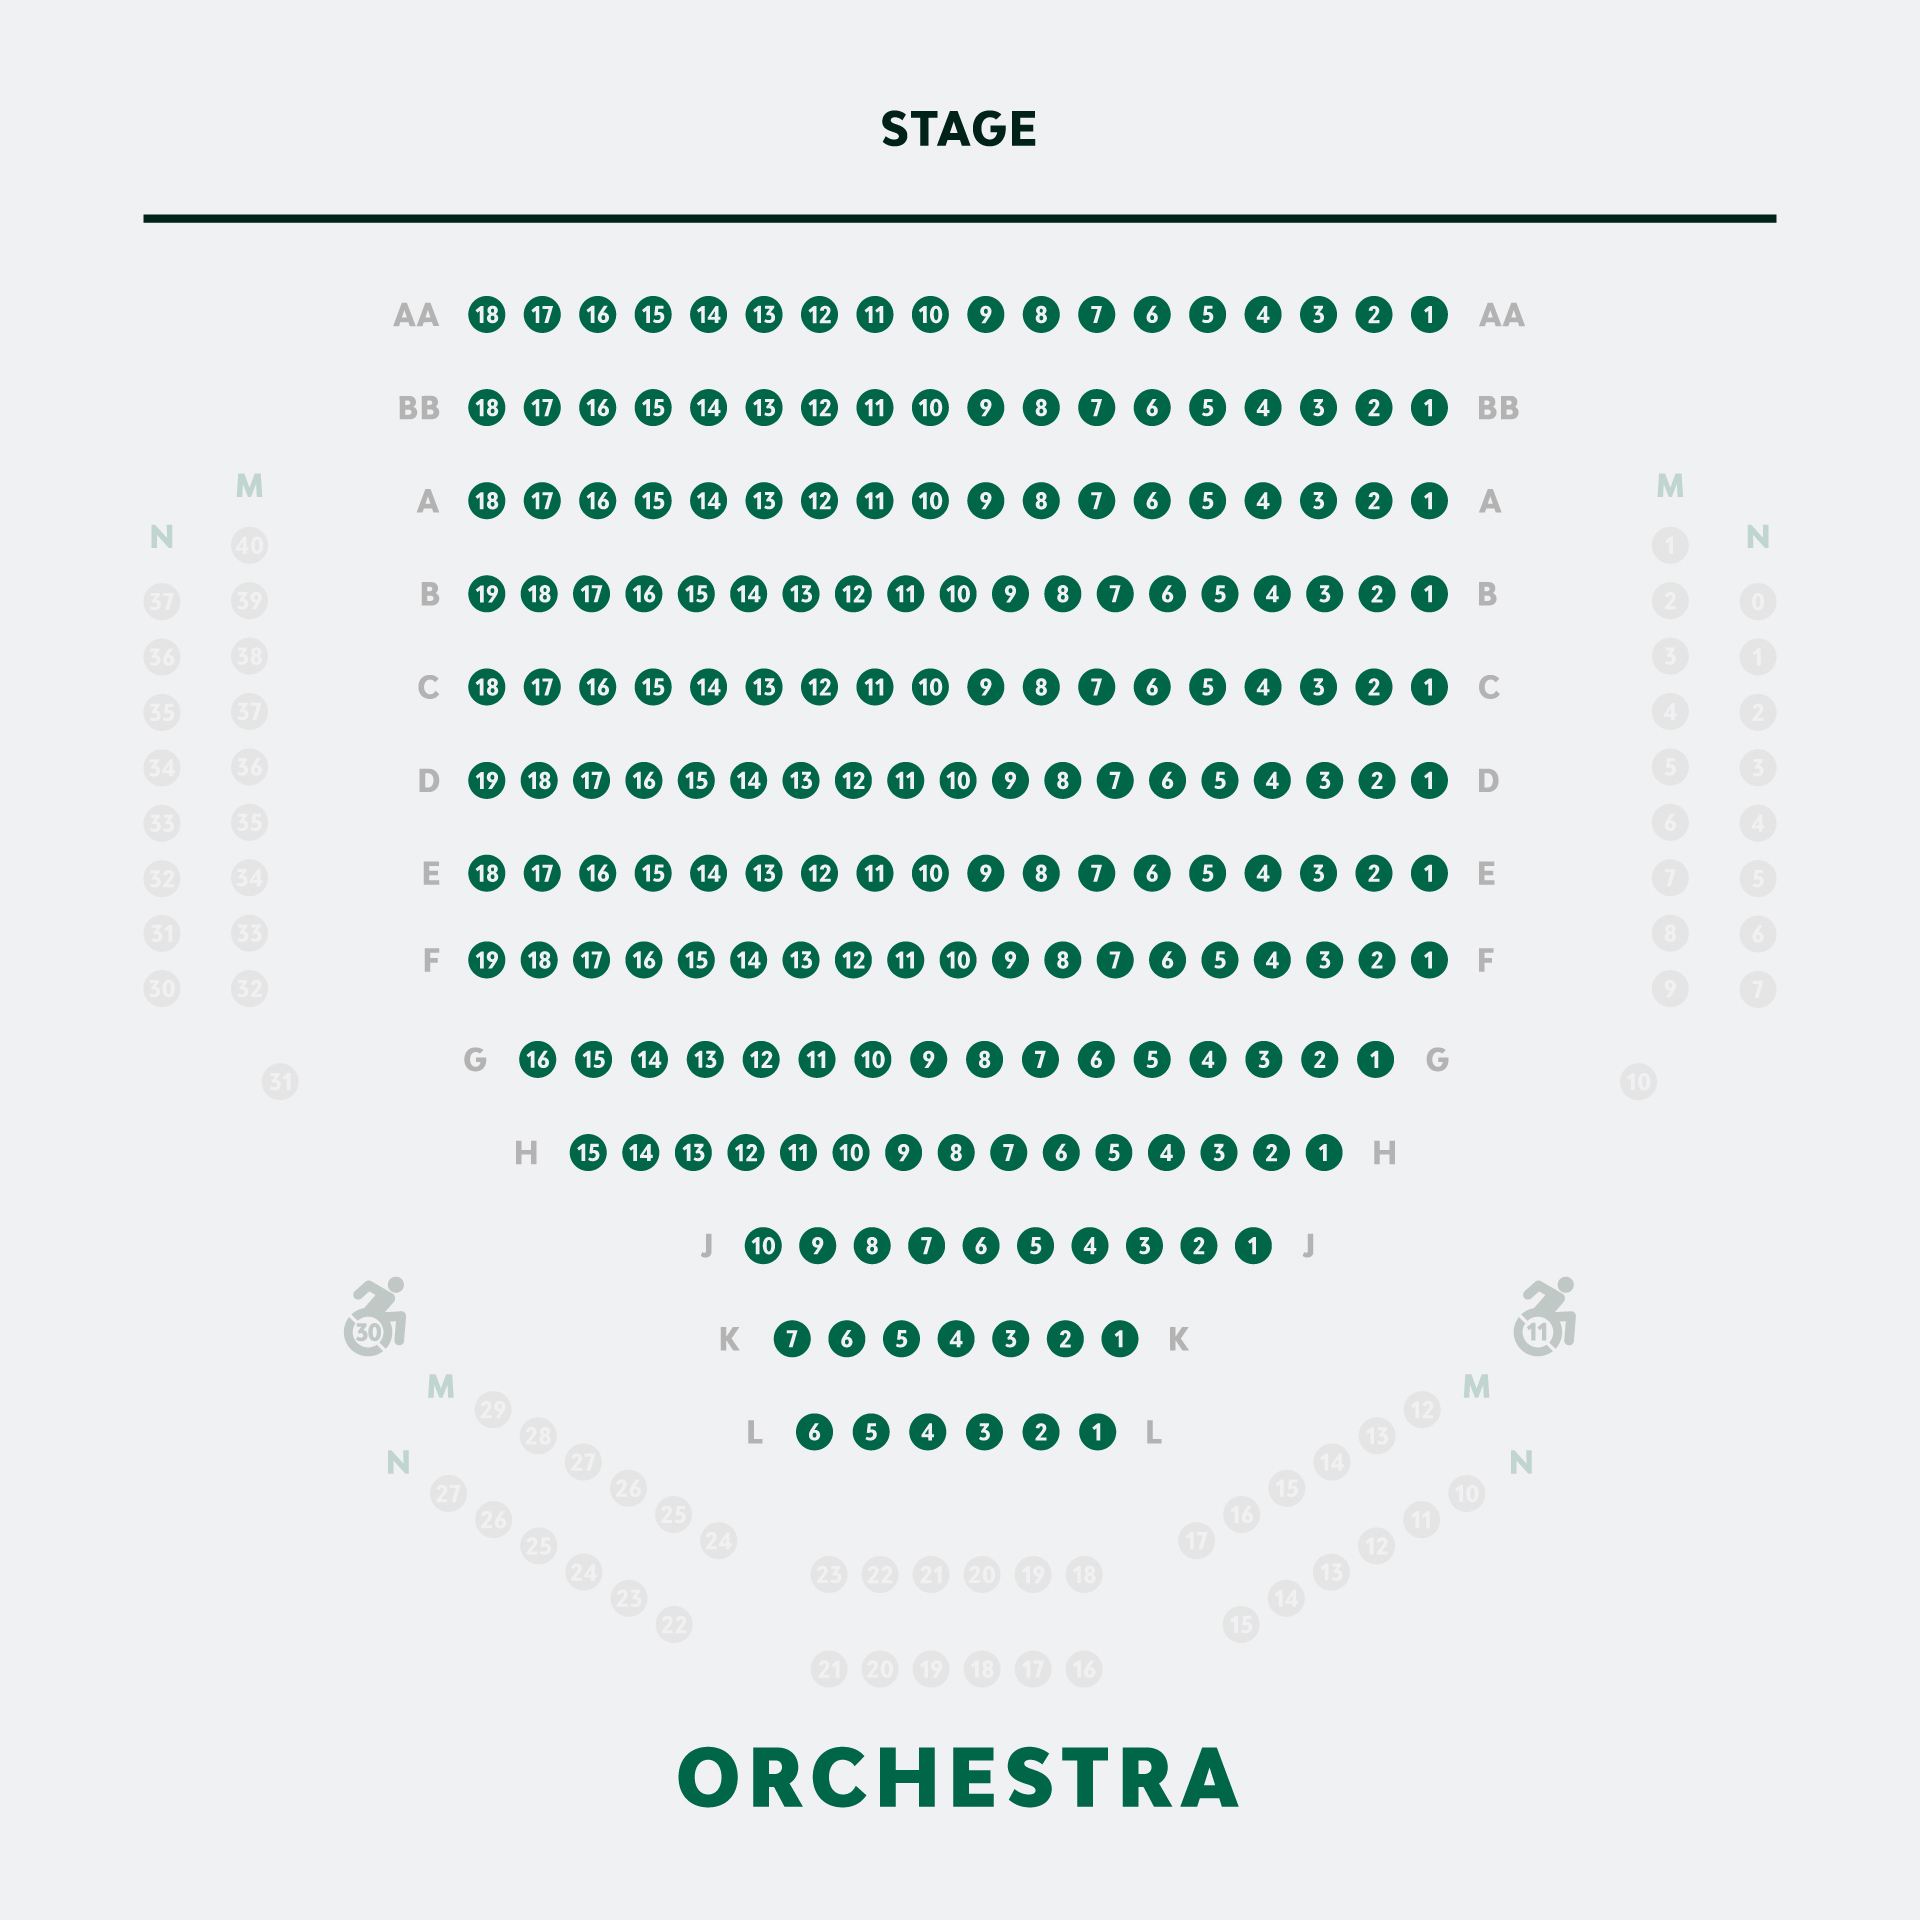 Elizabeth Wallace Theater Orchestra Seating